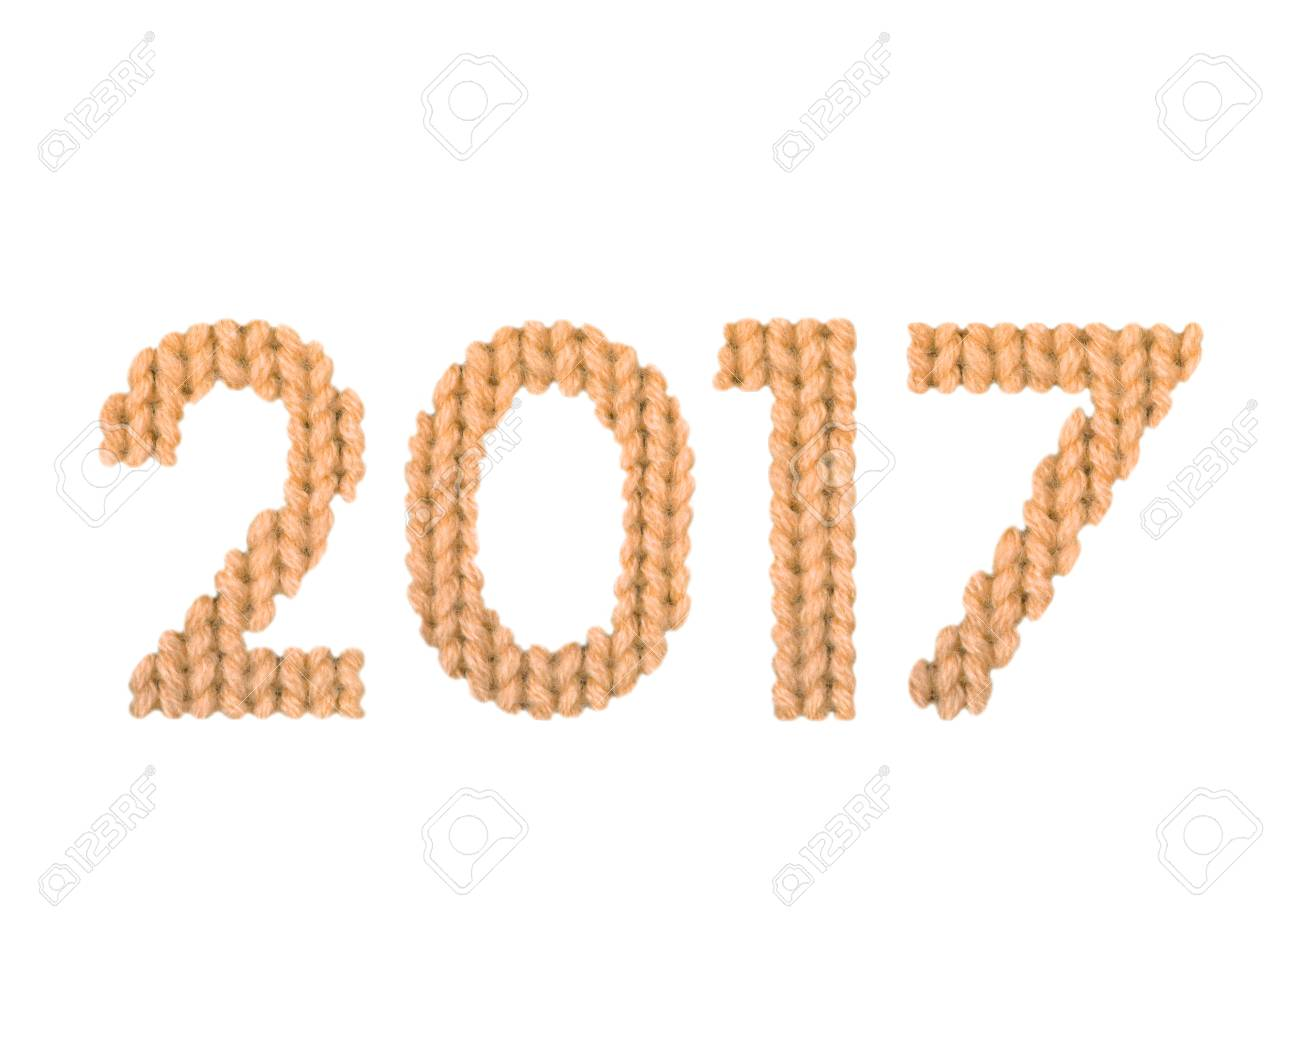 2017 numbers on a blurry texture knitted pattern of woolen thread closeup. English alphabet. Typography design. Color orange - 69758859